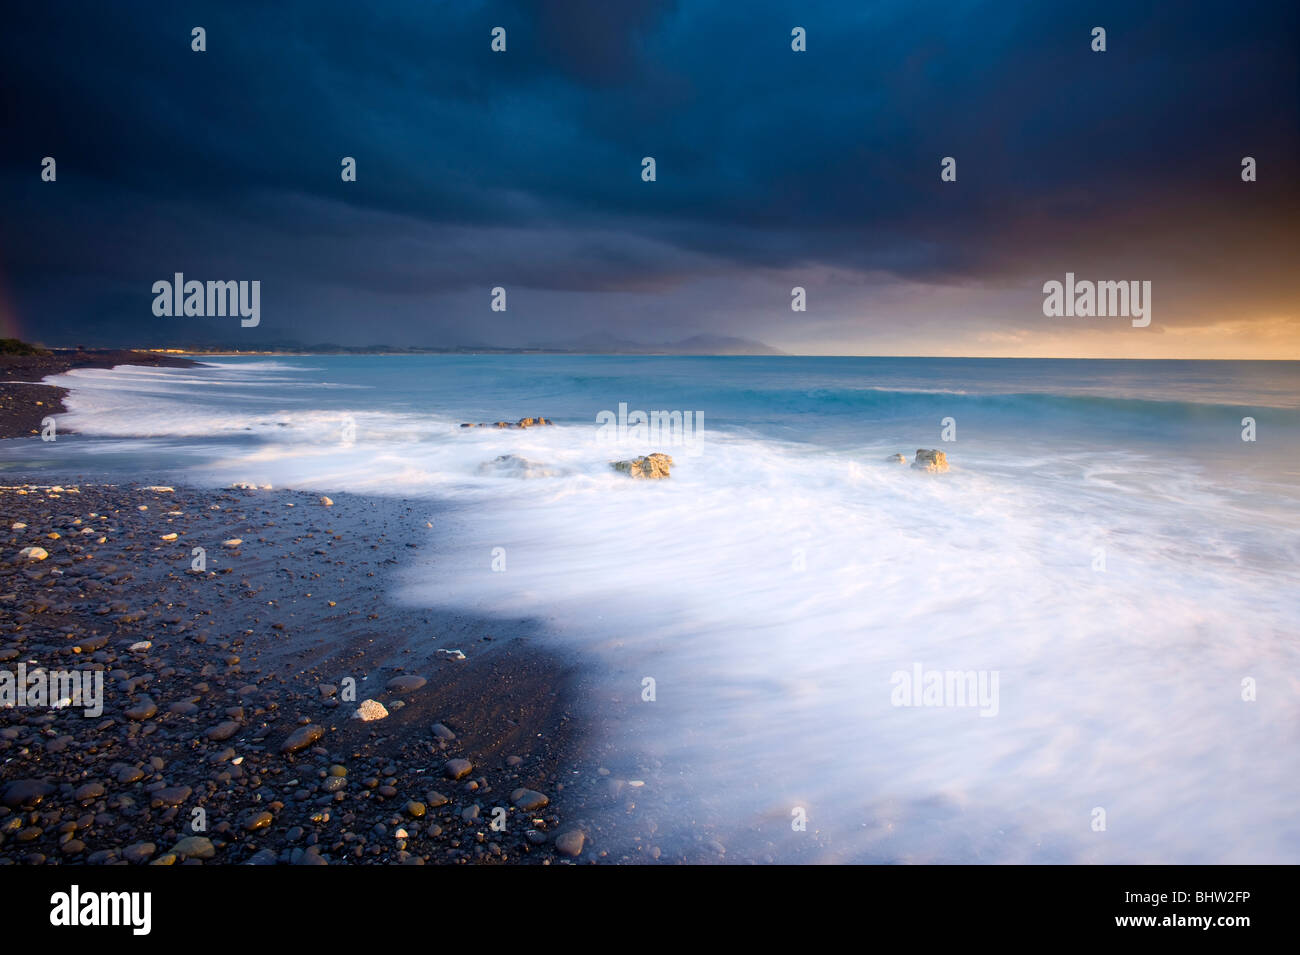 Gooch's Beach, Kaikoura, South Island, New Zealand - Stock Image